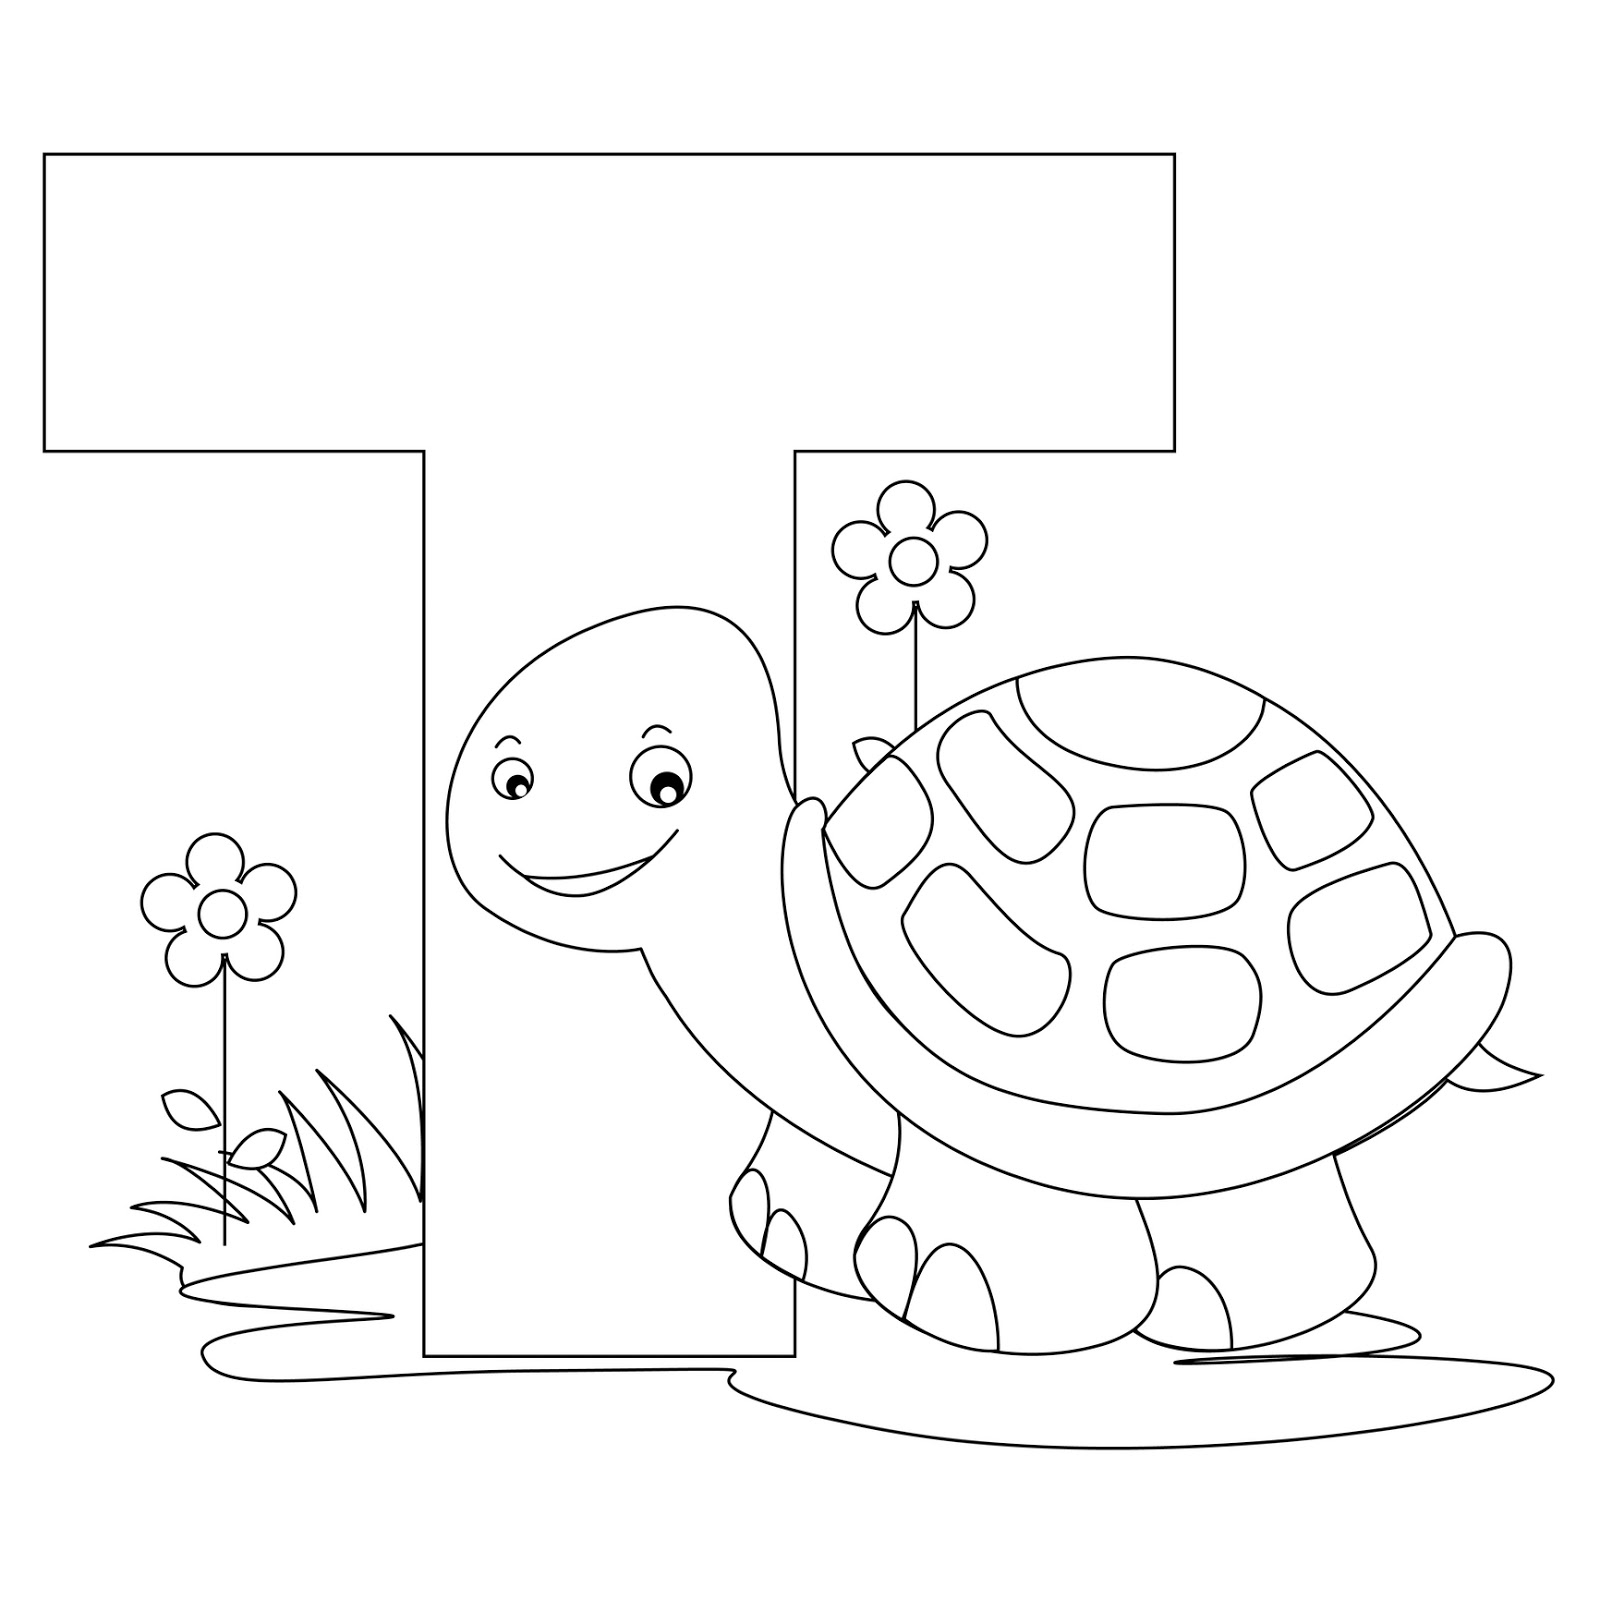 animal alphabet colouring pages animal alphabet v coloring page stock vector animal pages alphabet colouring